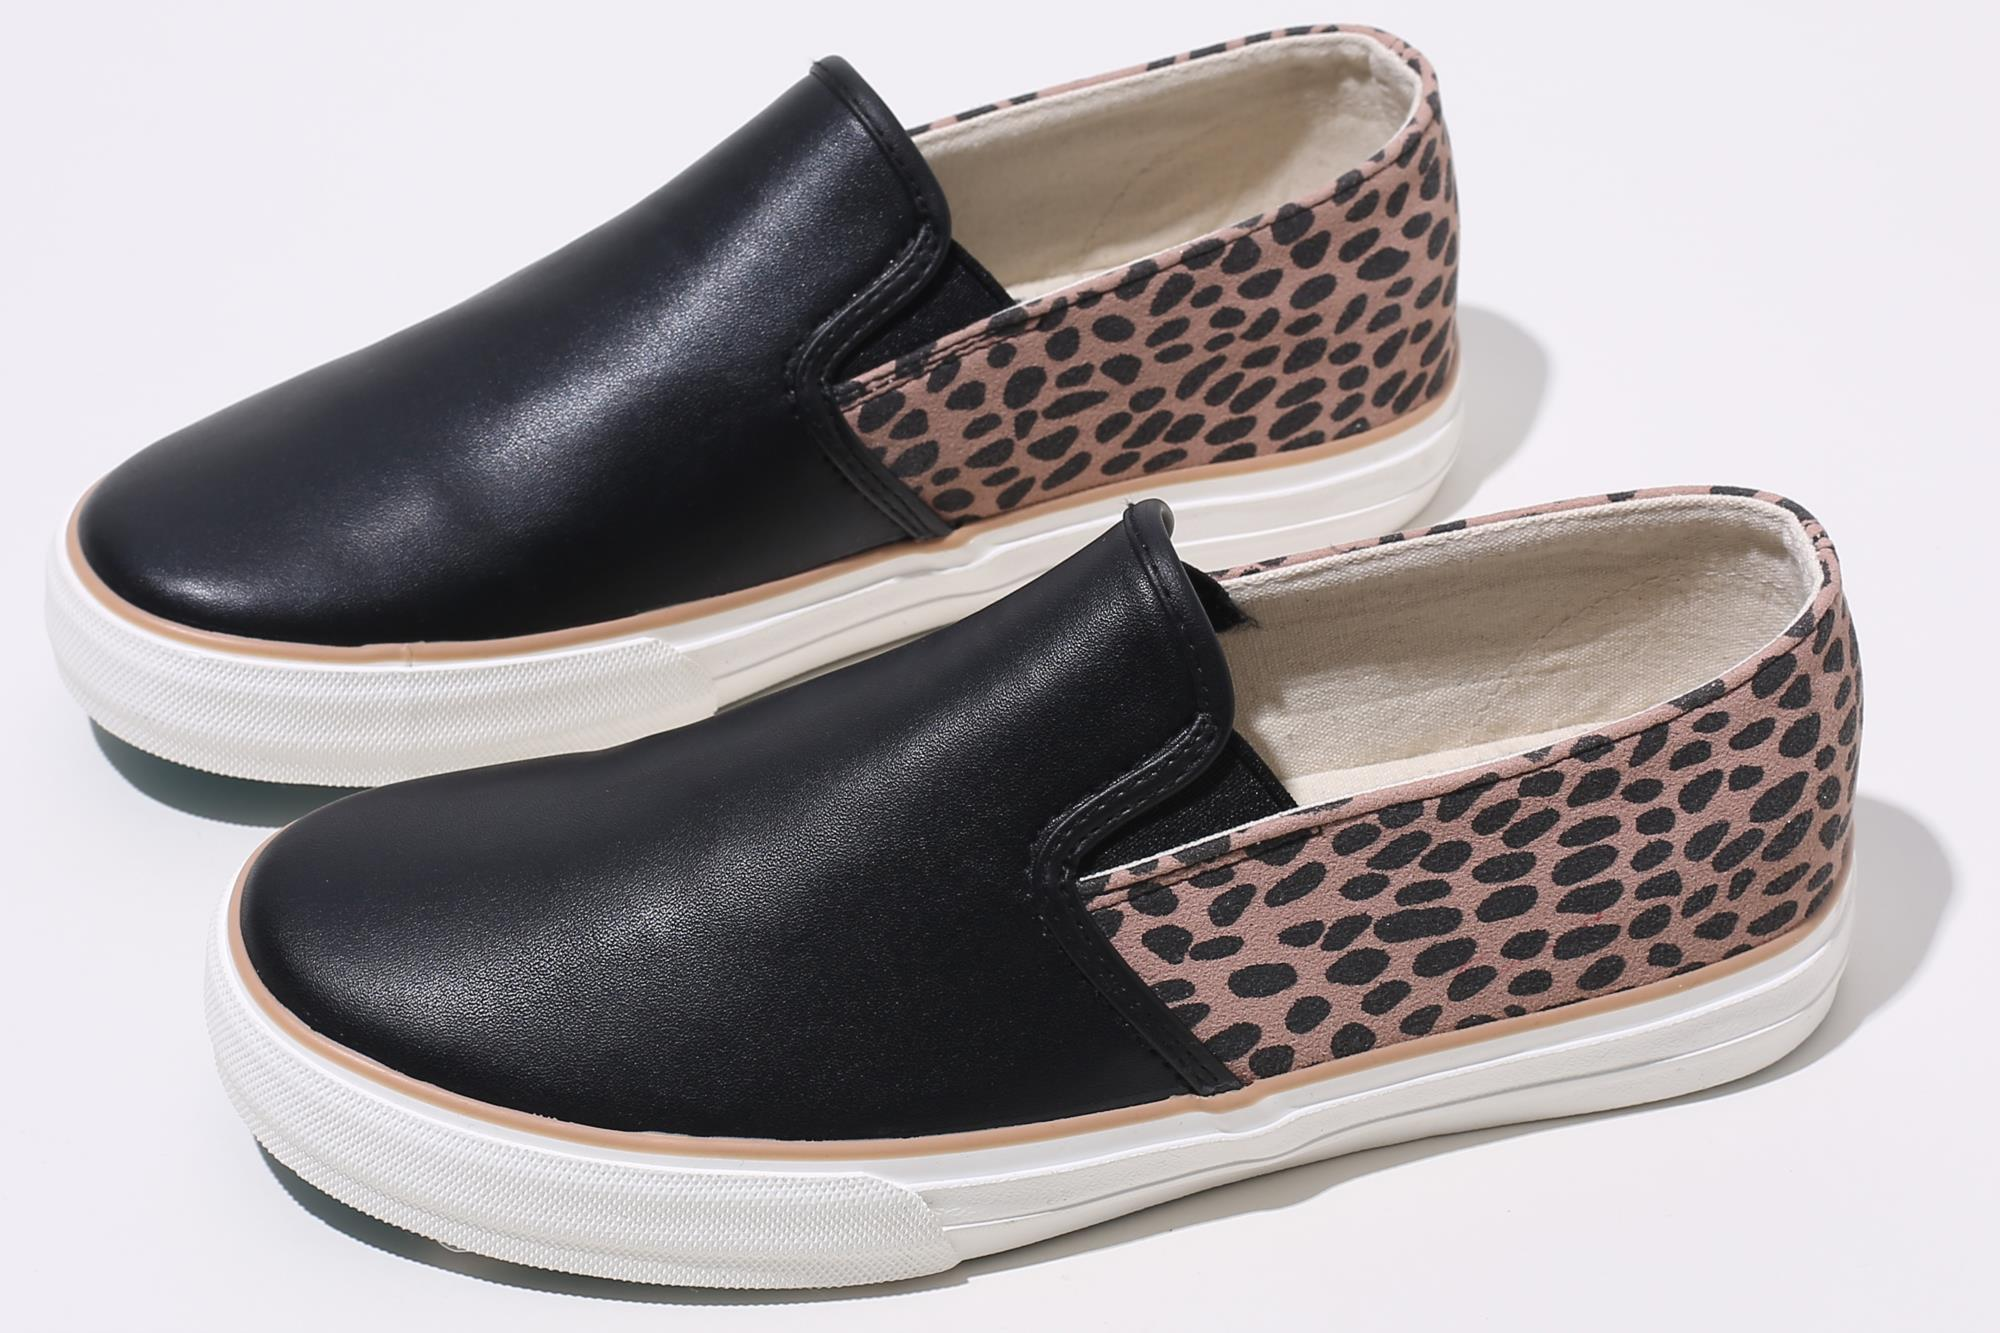 2020 high quality slip on autumn winter leopard leather shoes women shoes suppliers